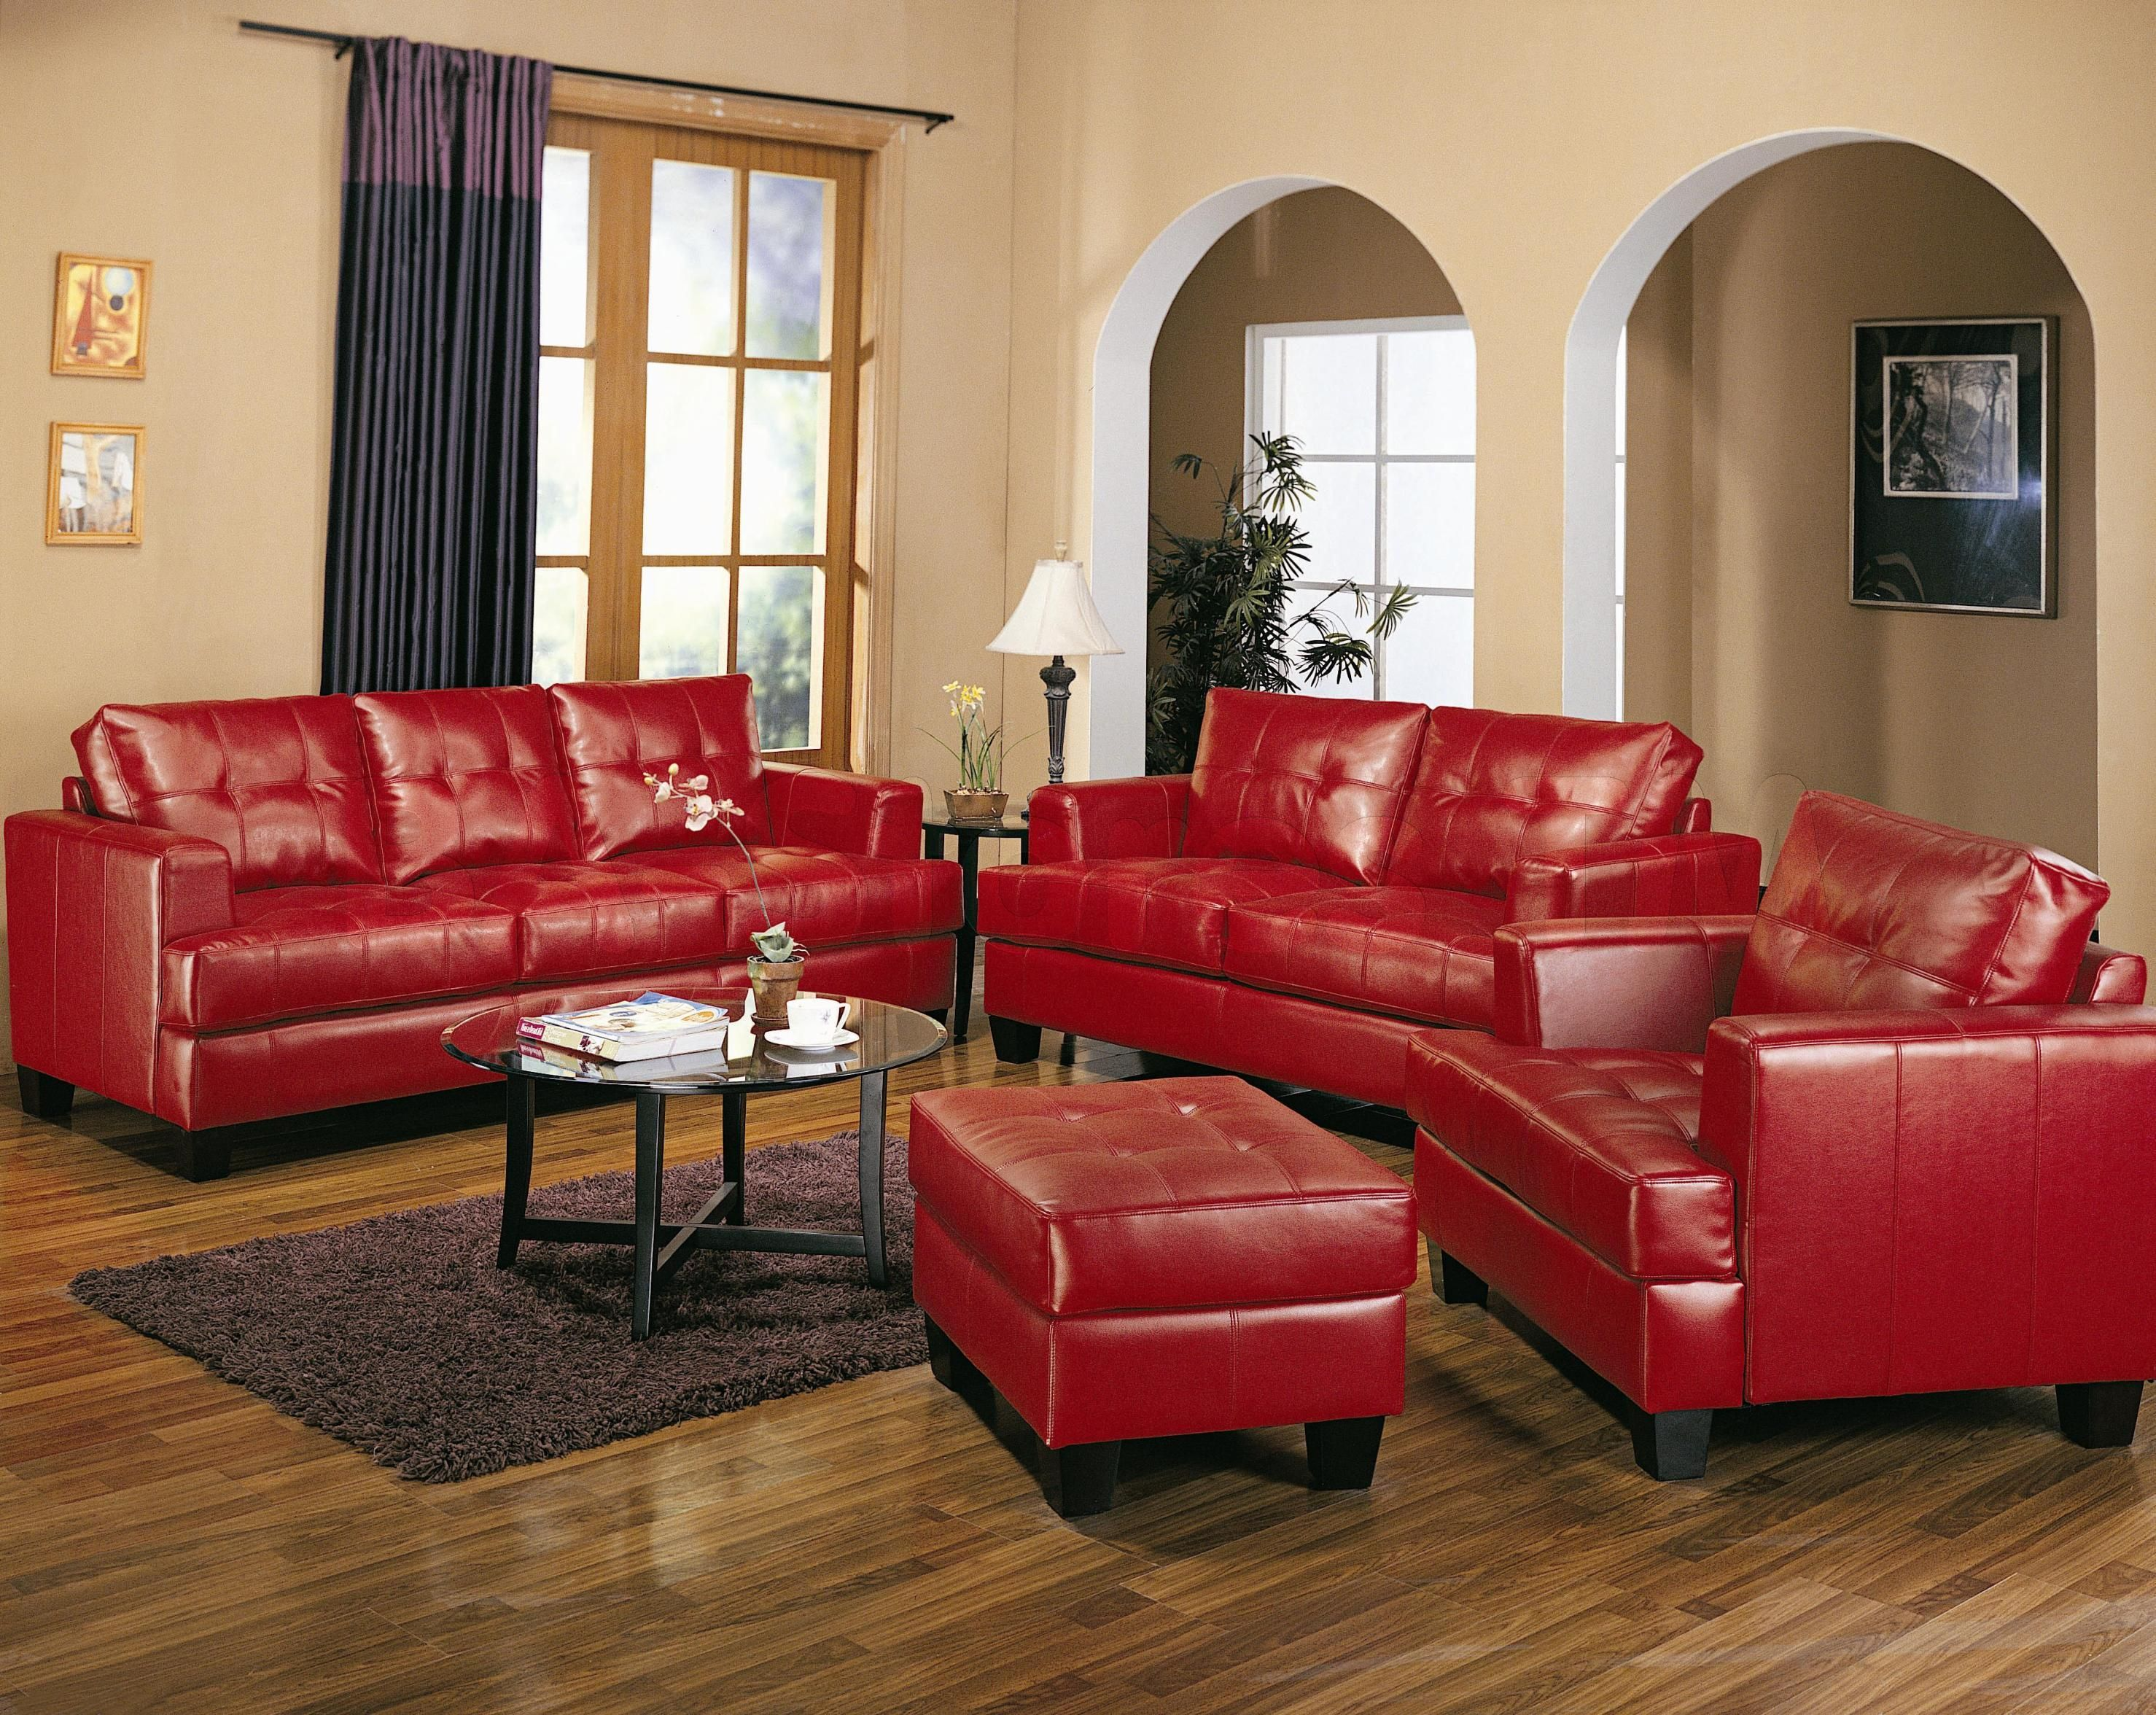 rooms with a red leather couch - Google Search | Ideas for ...